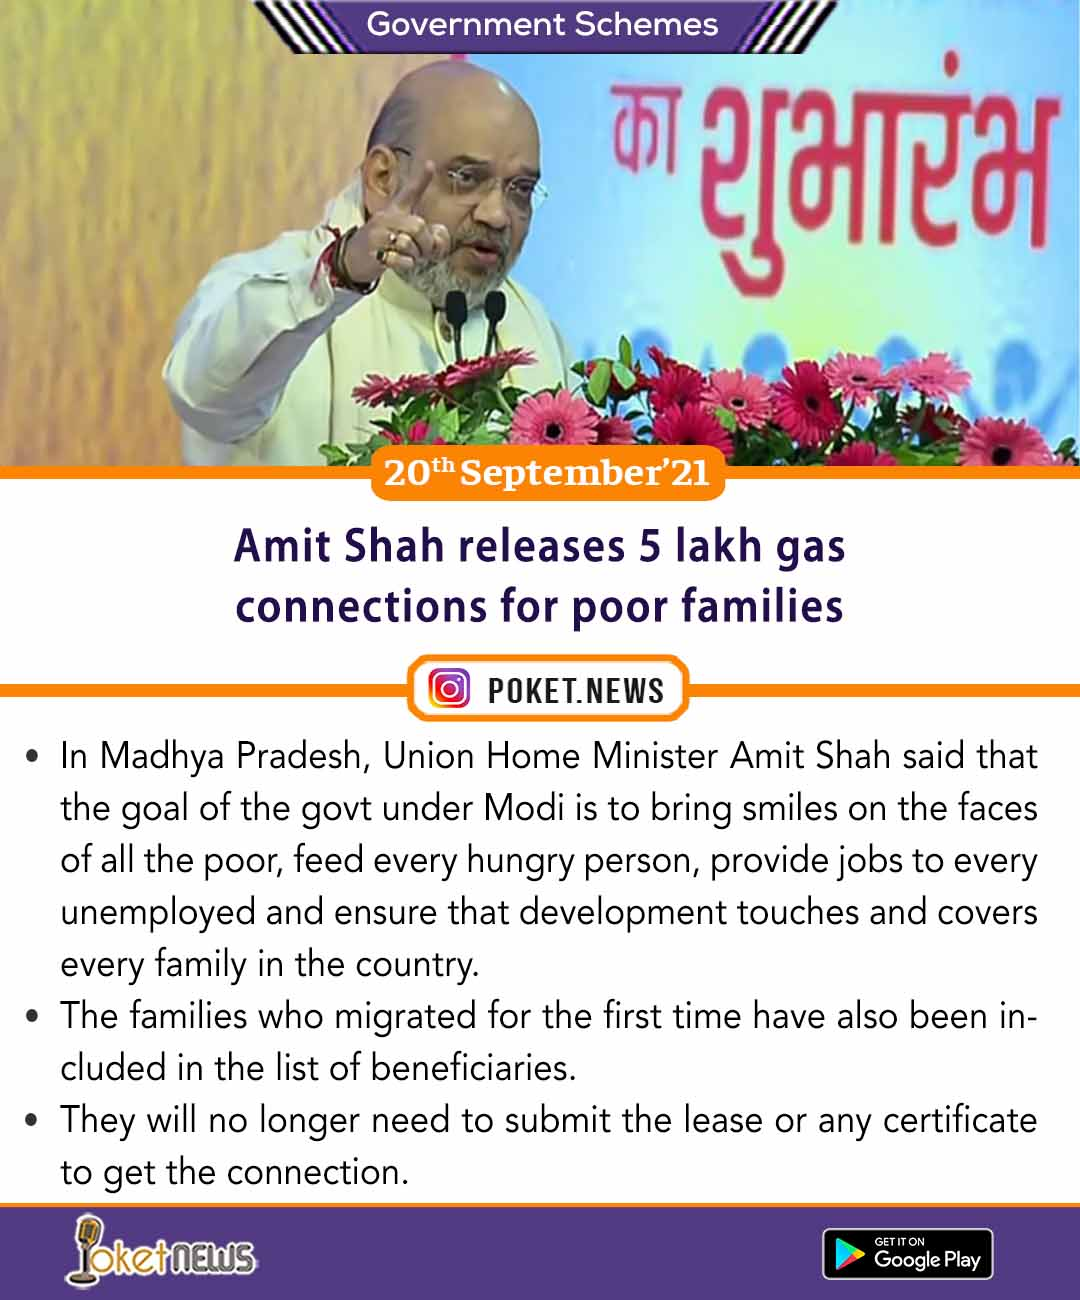 Amit Shah releases 5 lakh gas connections for poor families